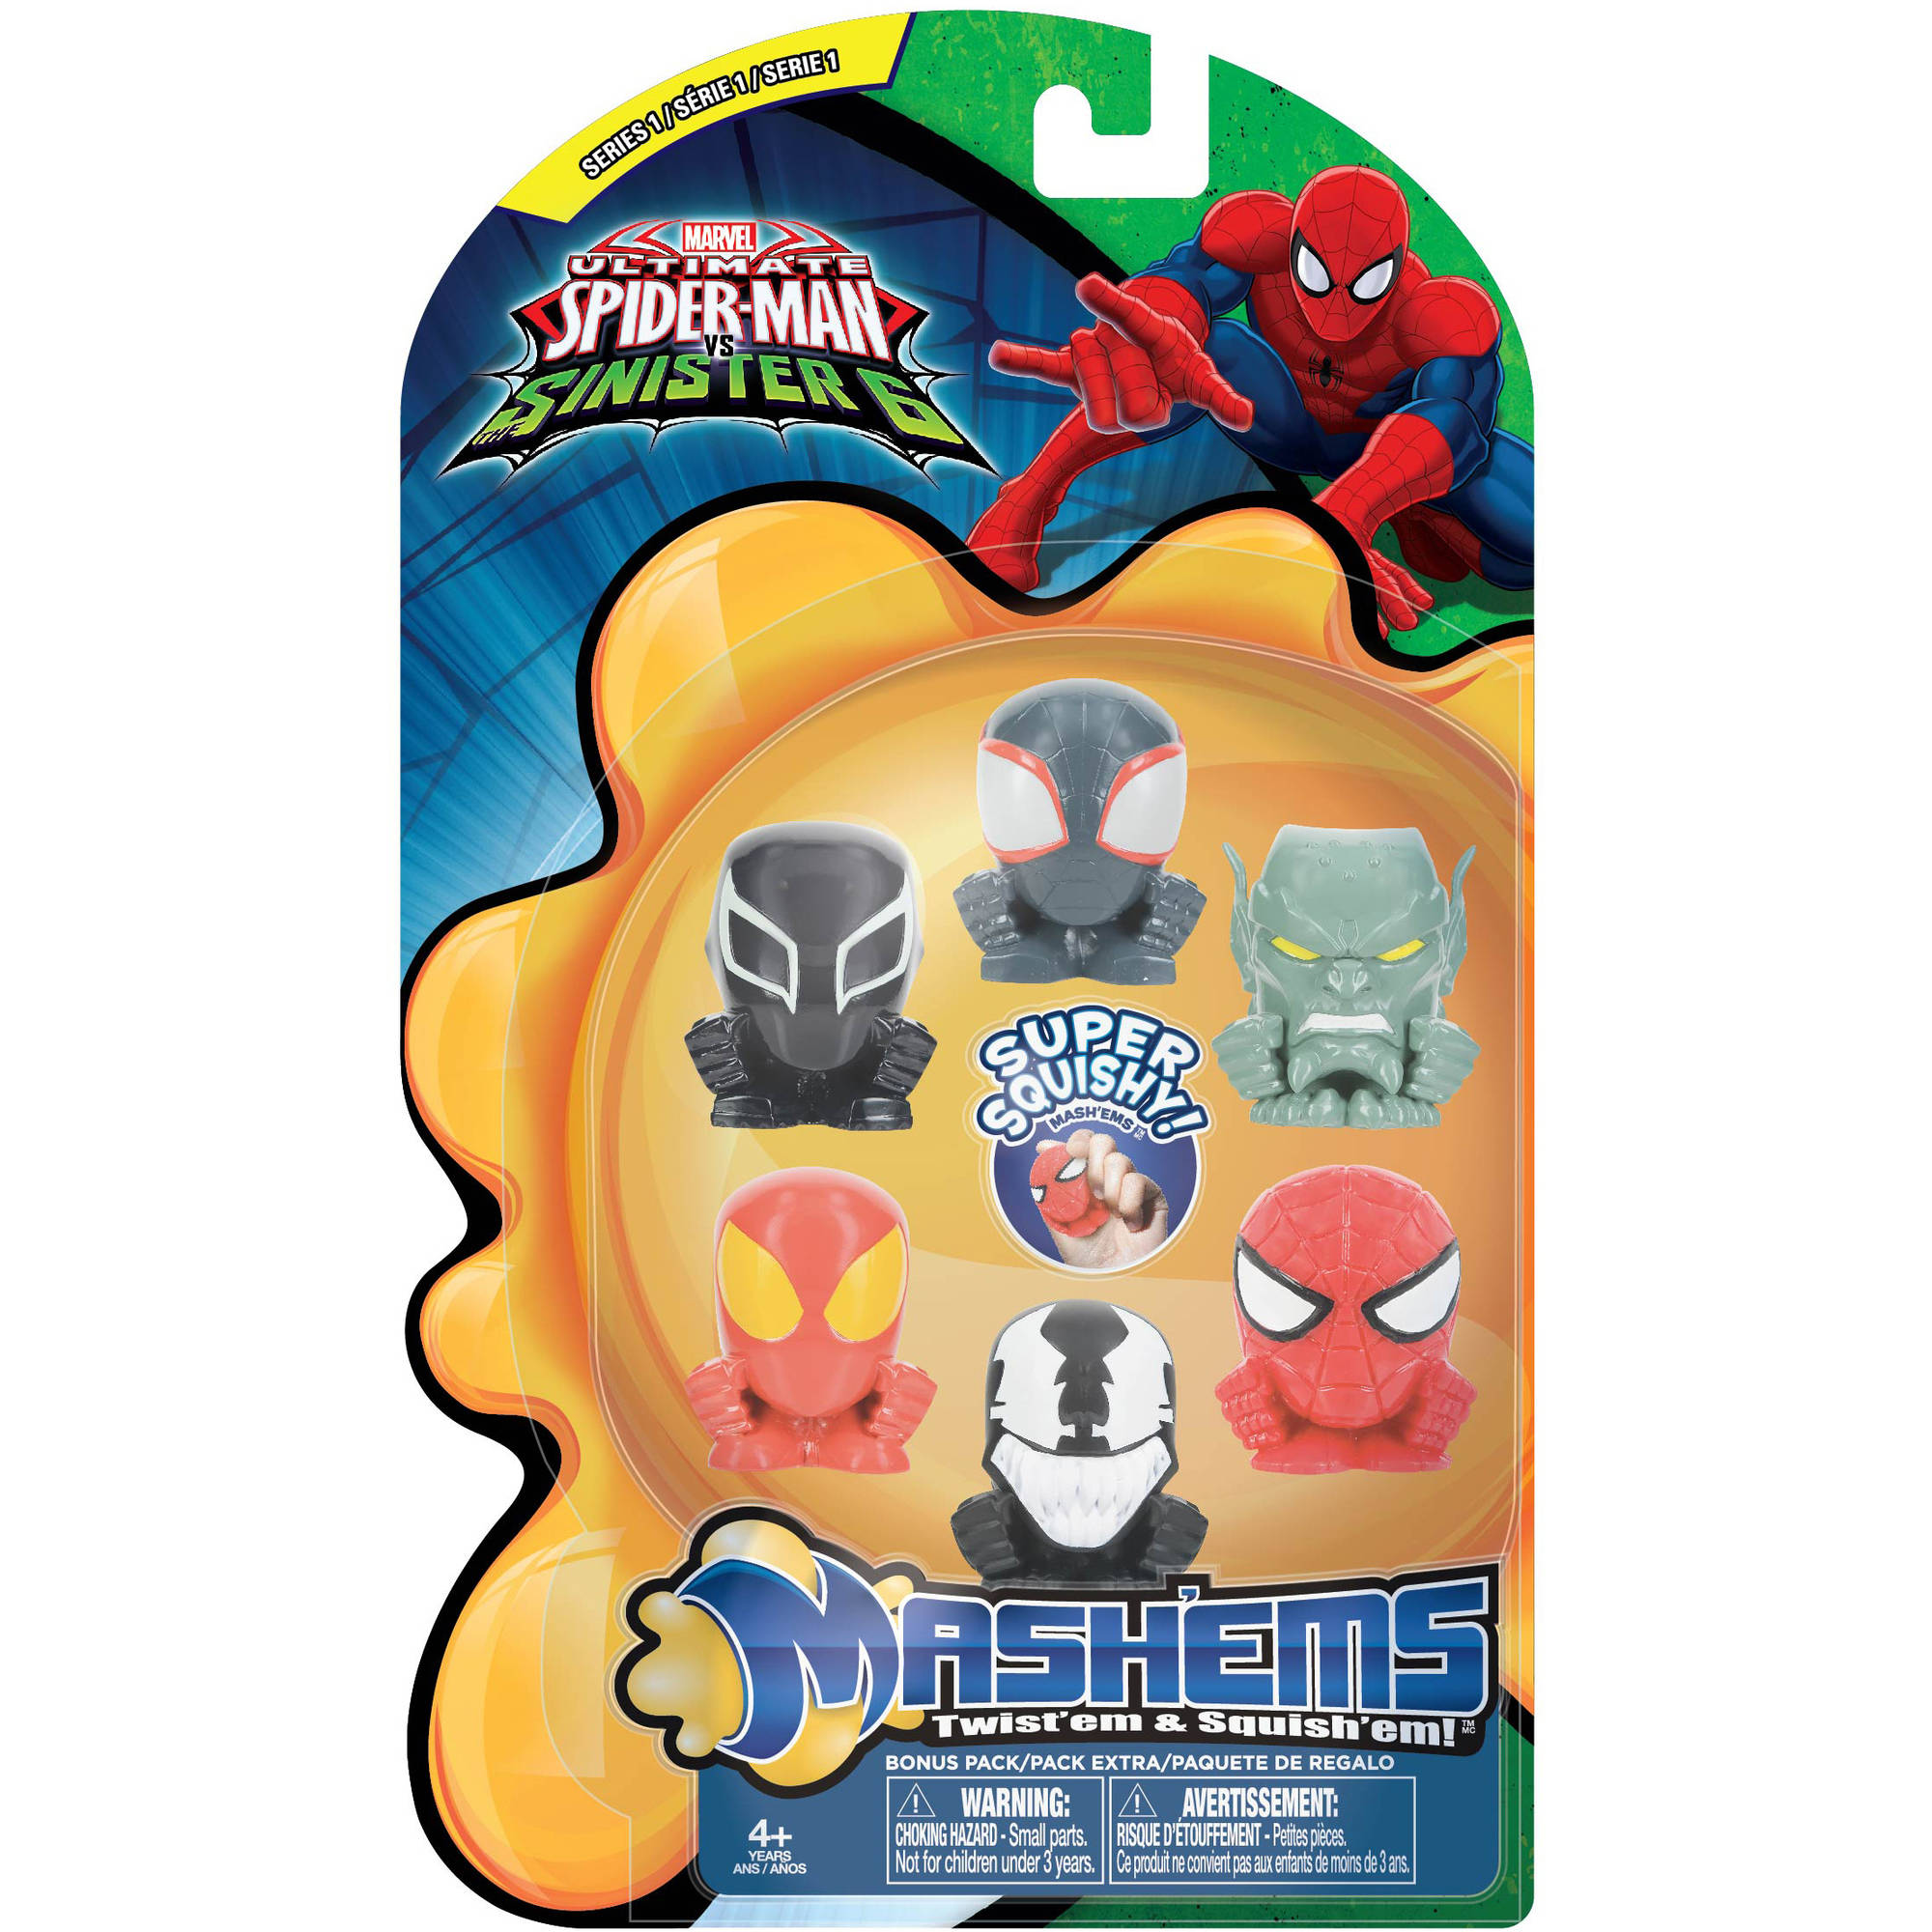 Mash'ems Spider-Man Sinister 6 Value Pack